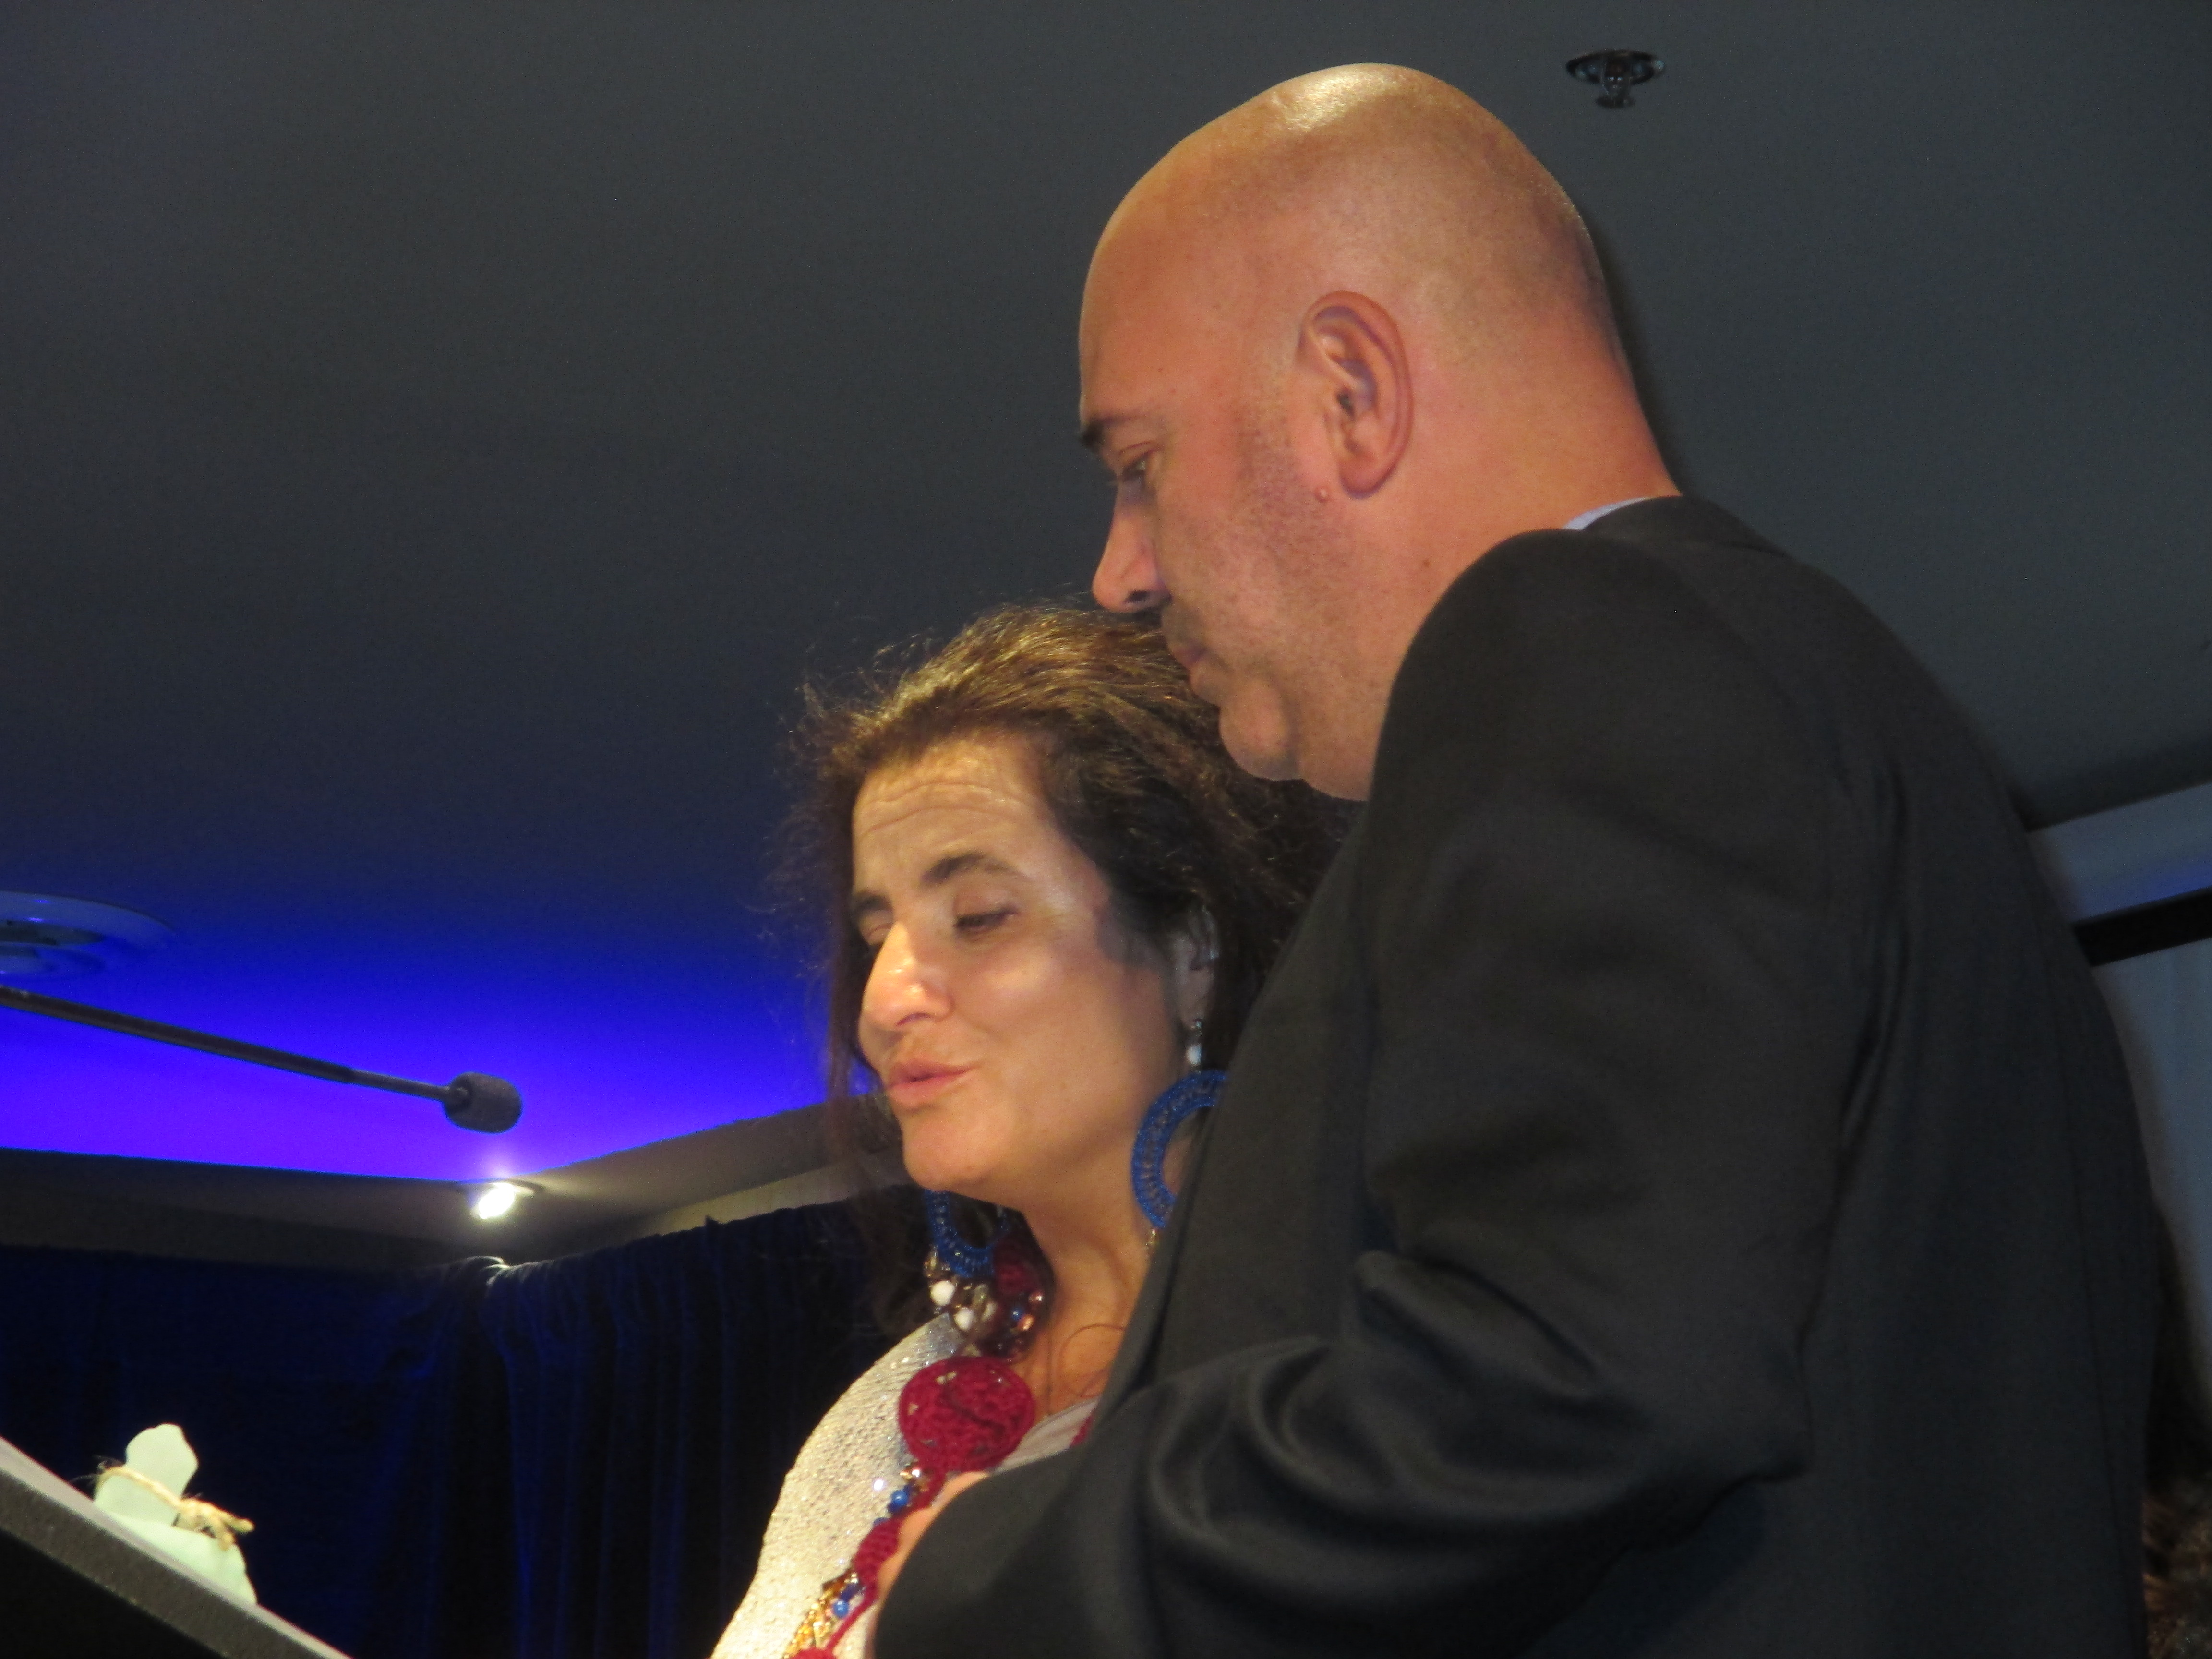 Italian Artist Lisa Perini eloquently accepting her award with brother Alessandro's translating support.